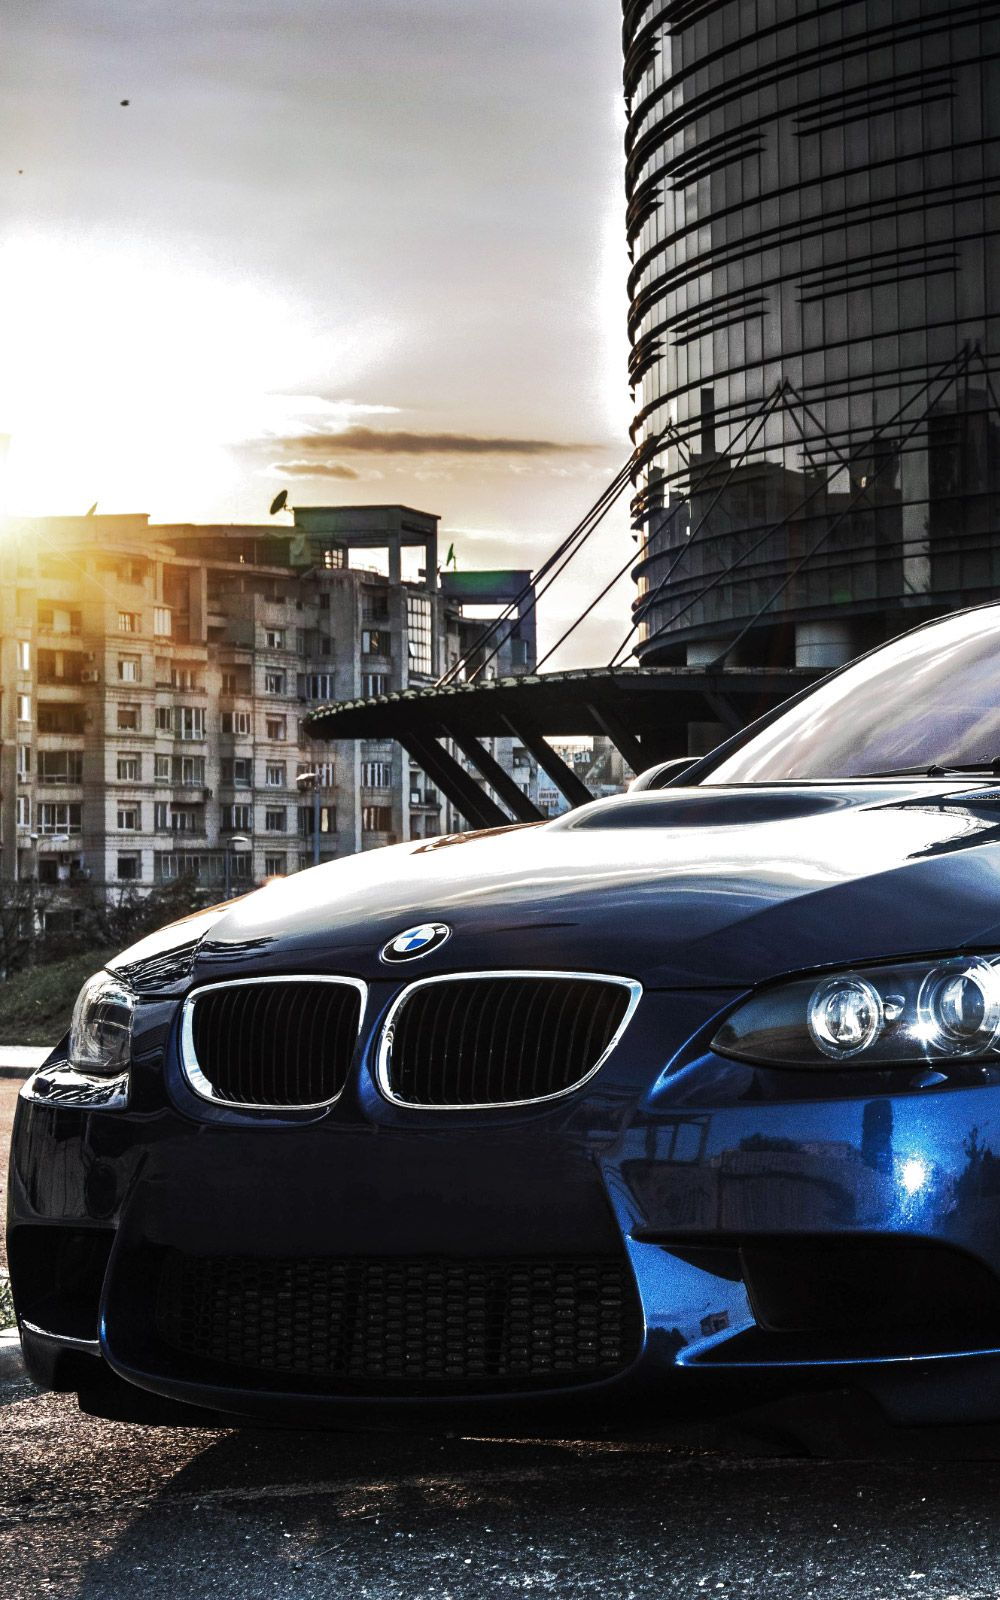 Bmw Car Mobile Wallpaper Mobile Wallpaper Bmw Wallpapers Bmw Cool Car Pictures